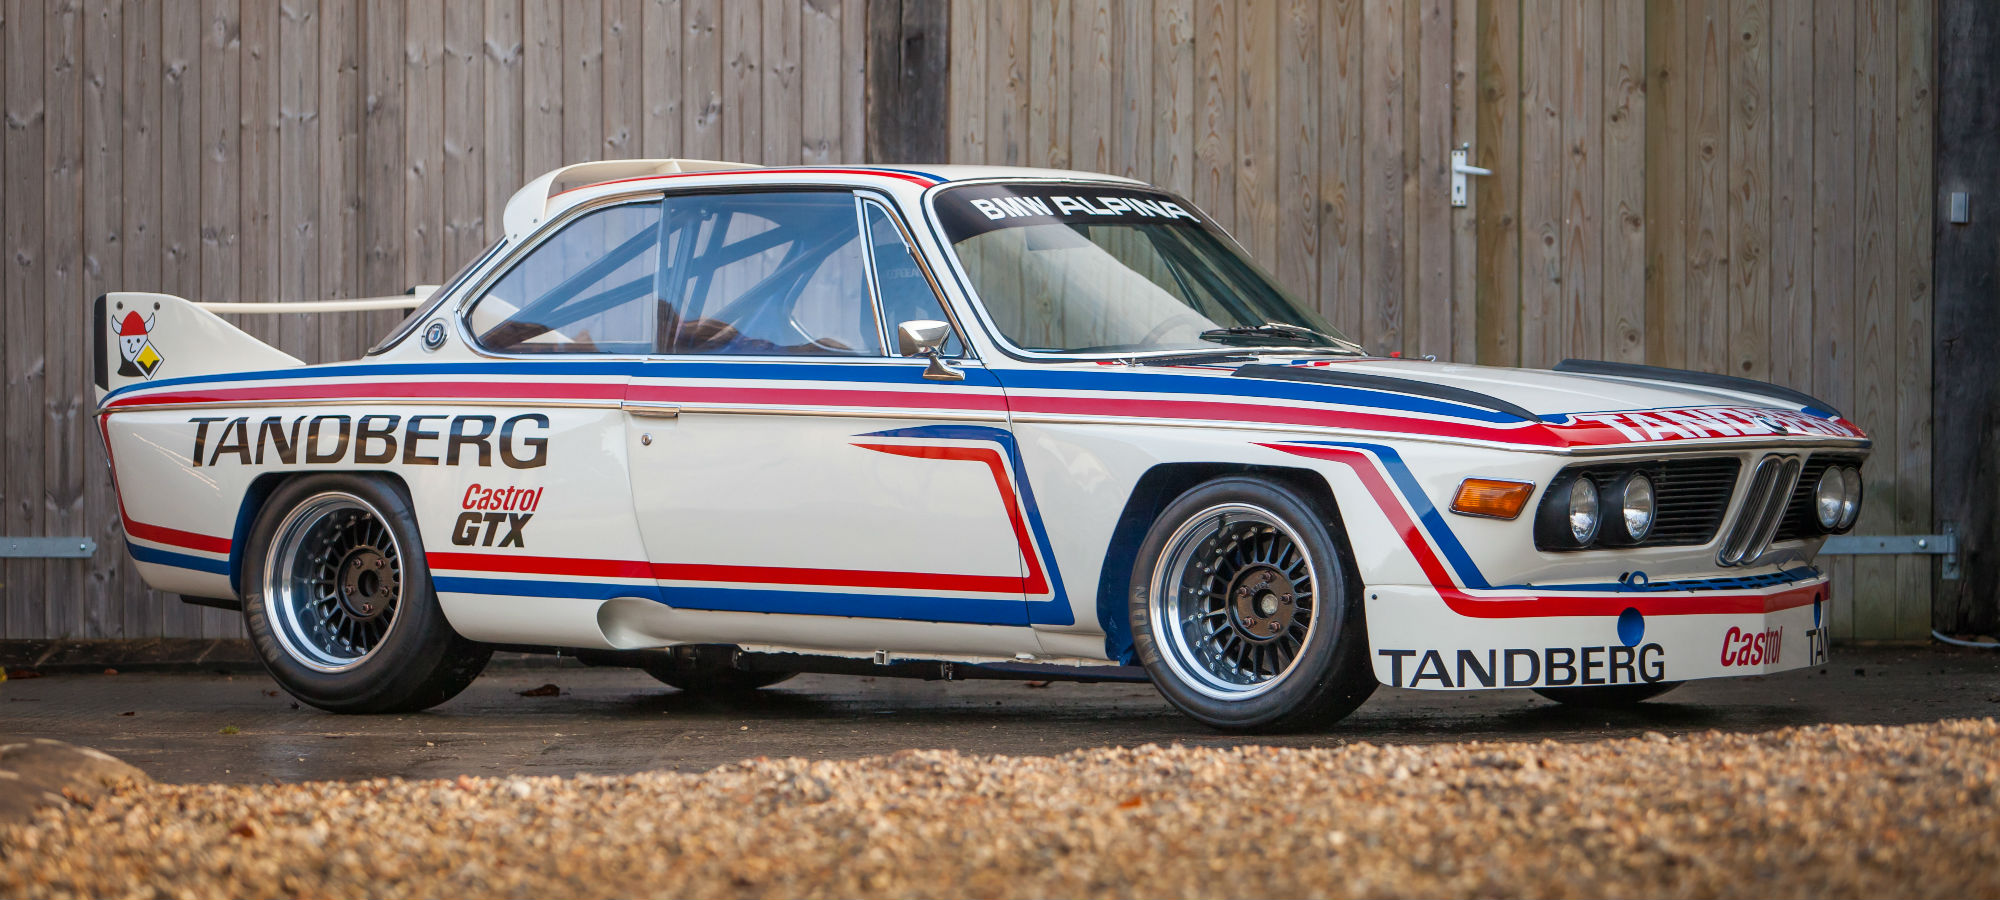 The Ex-Alpina Works, Multiple Championship Winning 1969 BMW 2800CS upgraded in 1974 to Alpina 3.0 CSL Group 2